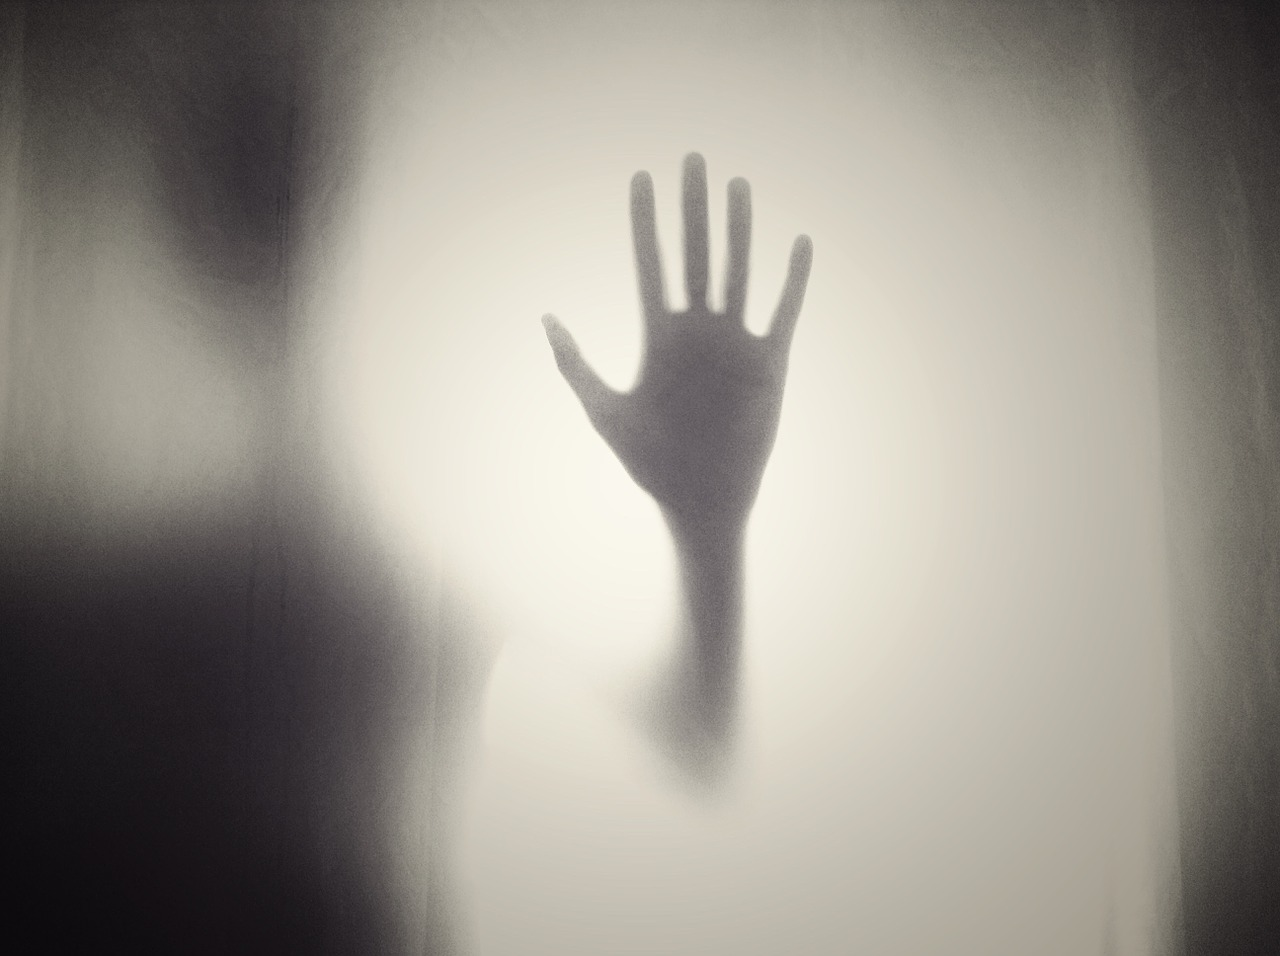 A hand is pressed against foggy glass.